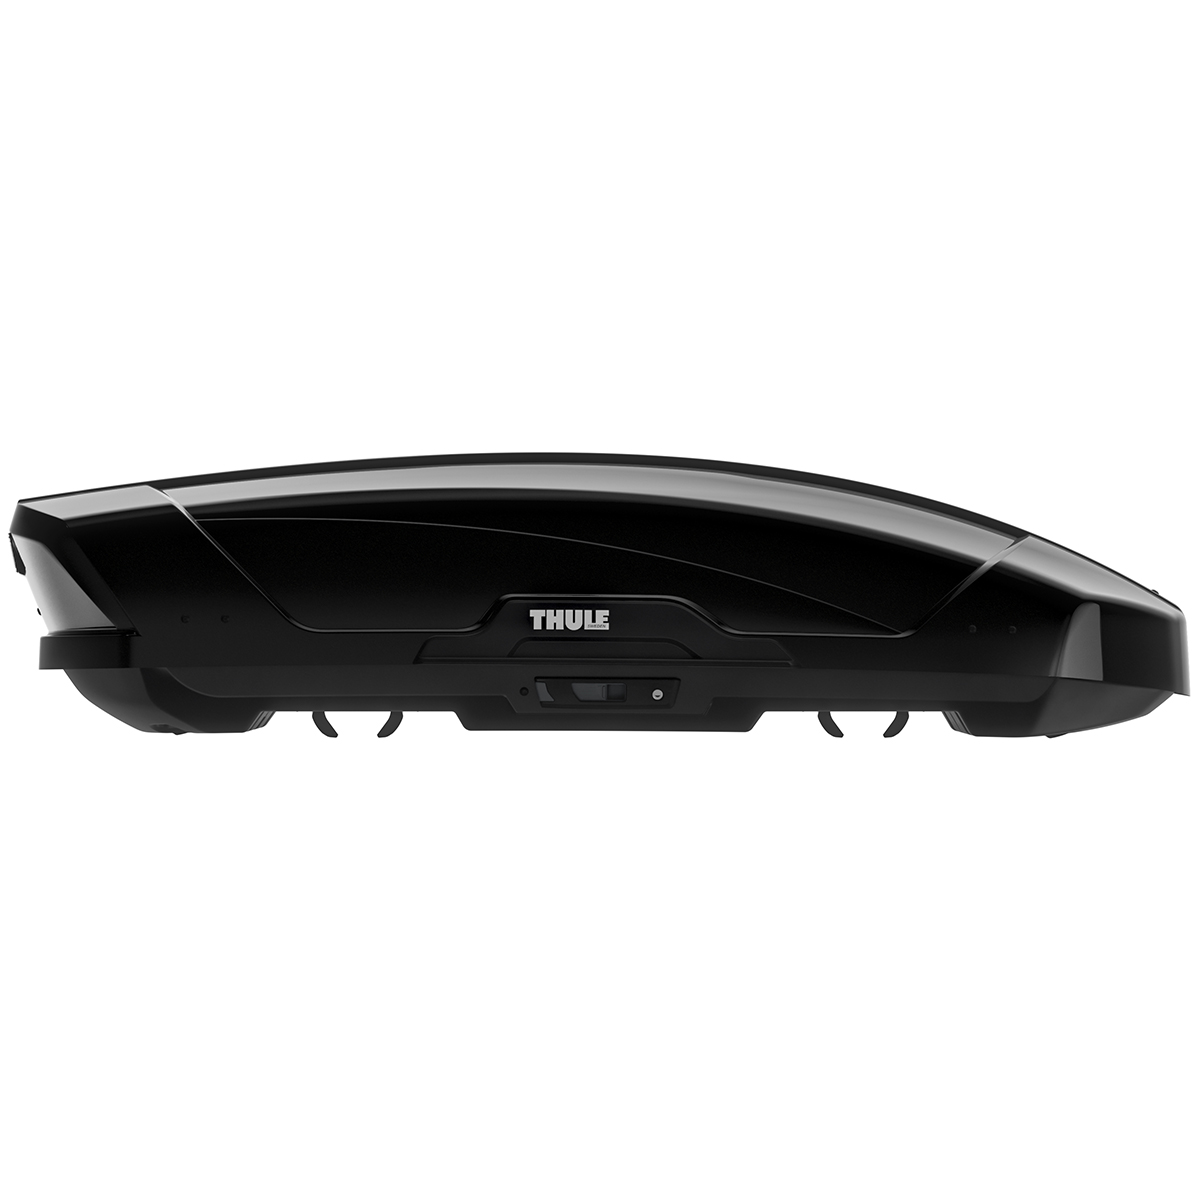 thule motion xt m 200 roof box. Black Bedroom Furniture Sets. Home Design Ideas